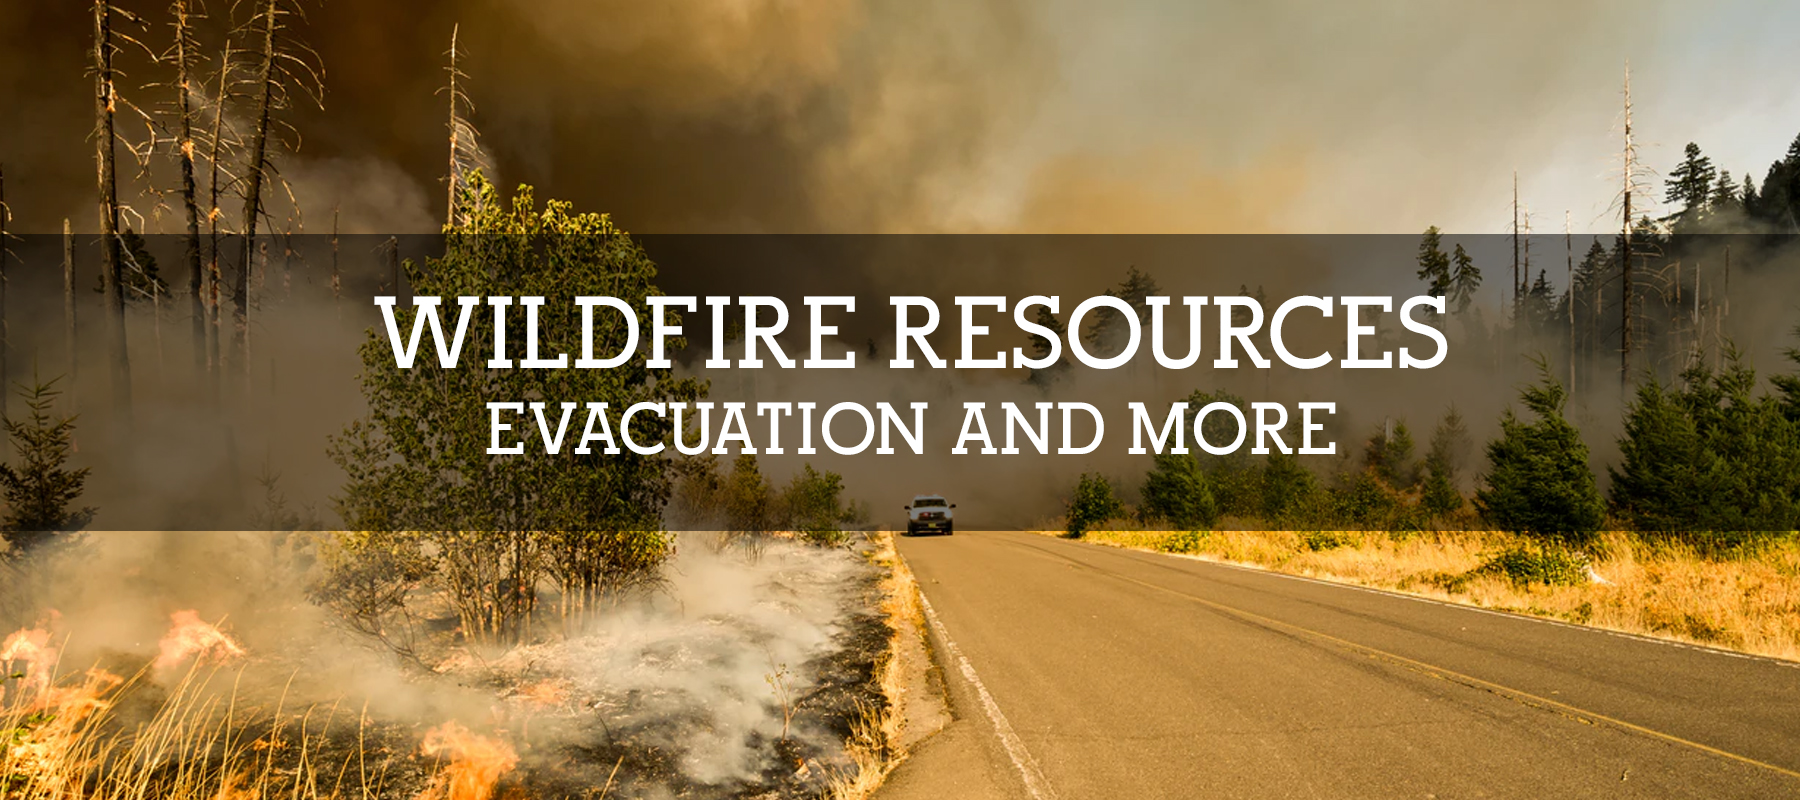 COLORADOR WILDFIRE RESOURCES - EVACUATION AND MORE